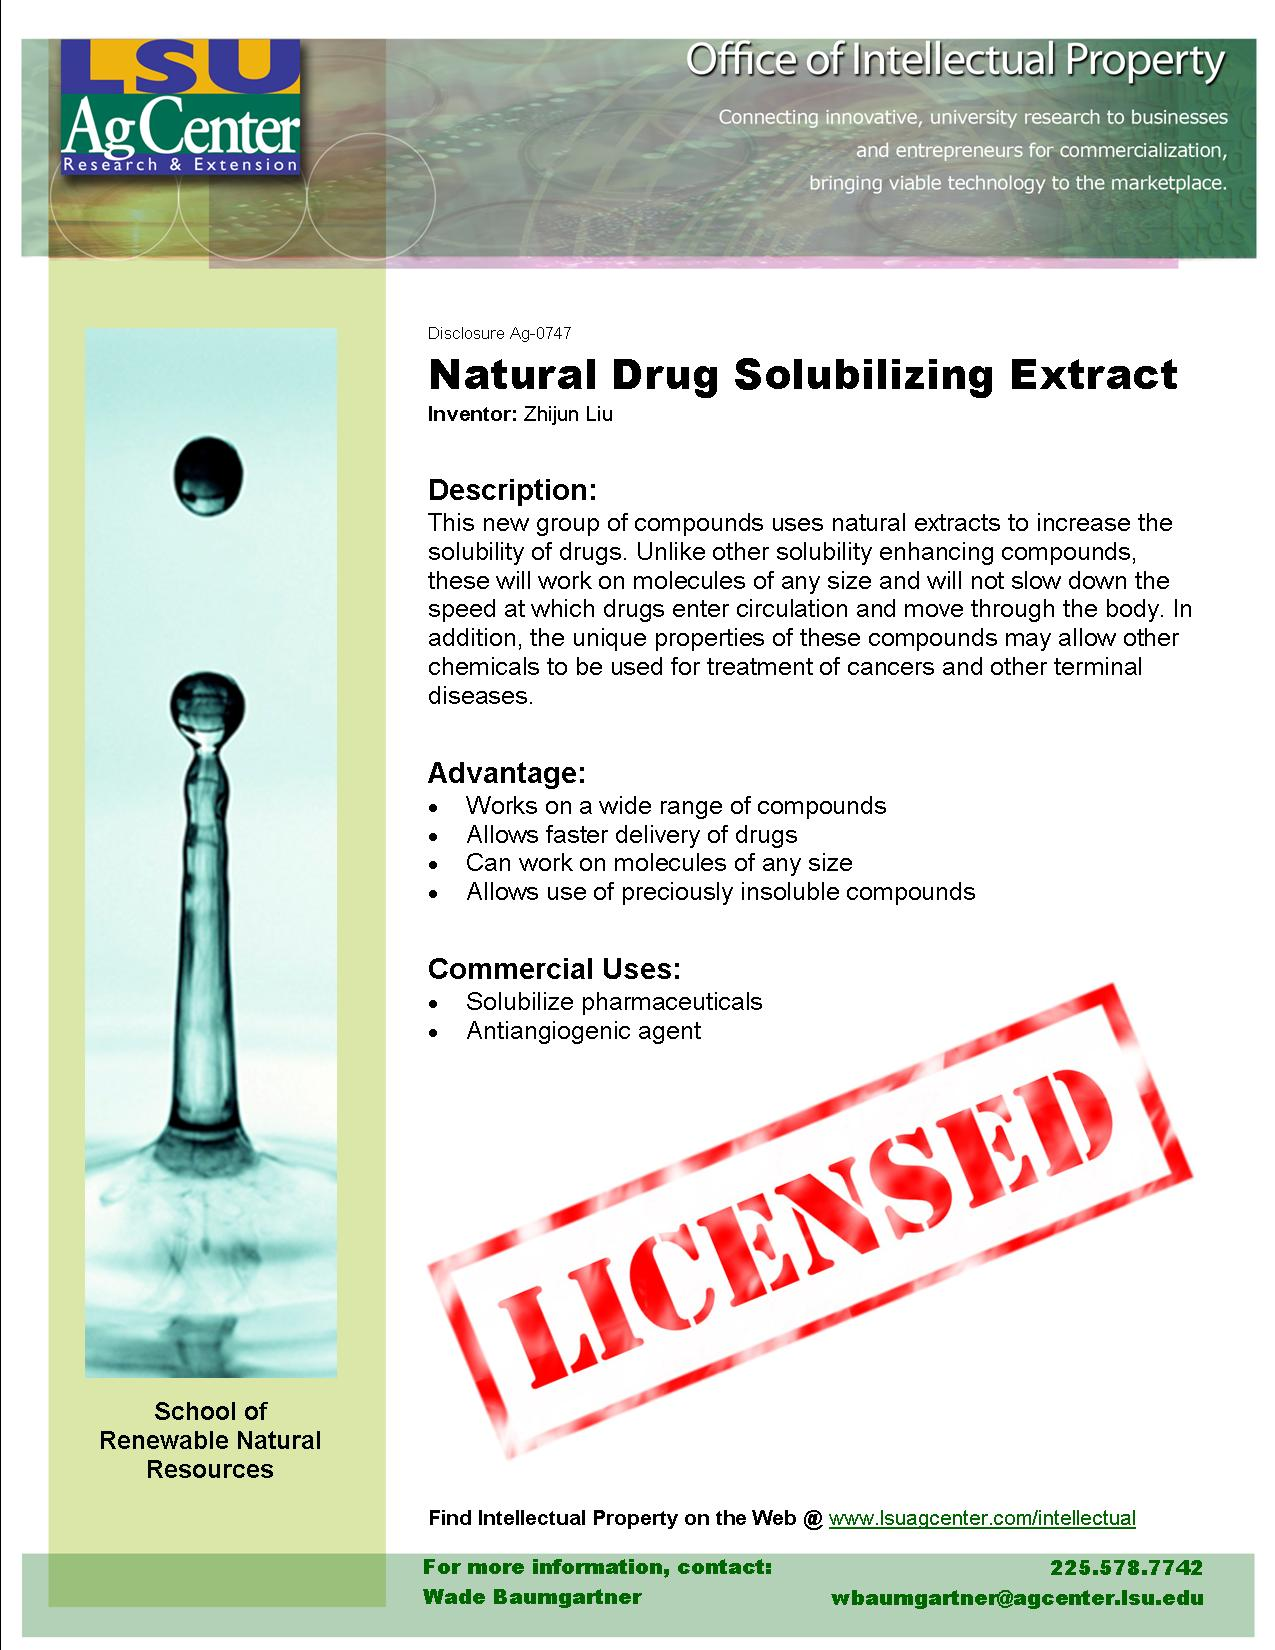 Natural Drug Solubilizing Extract